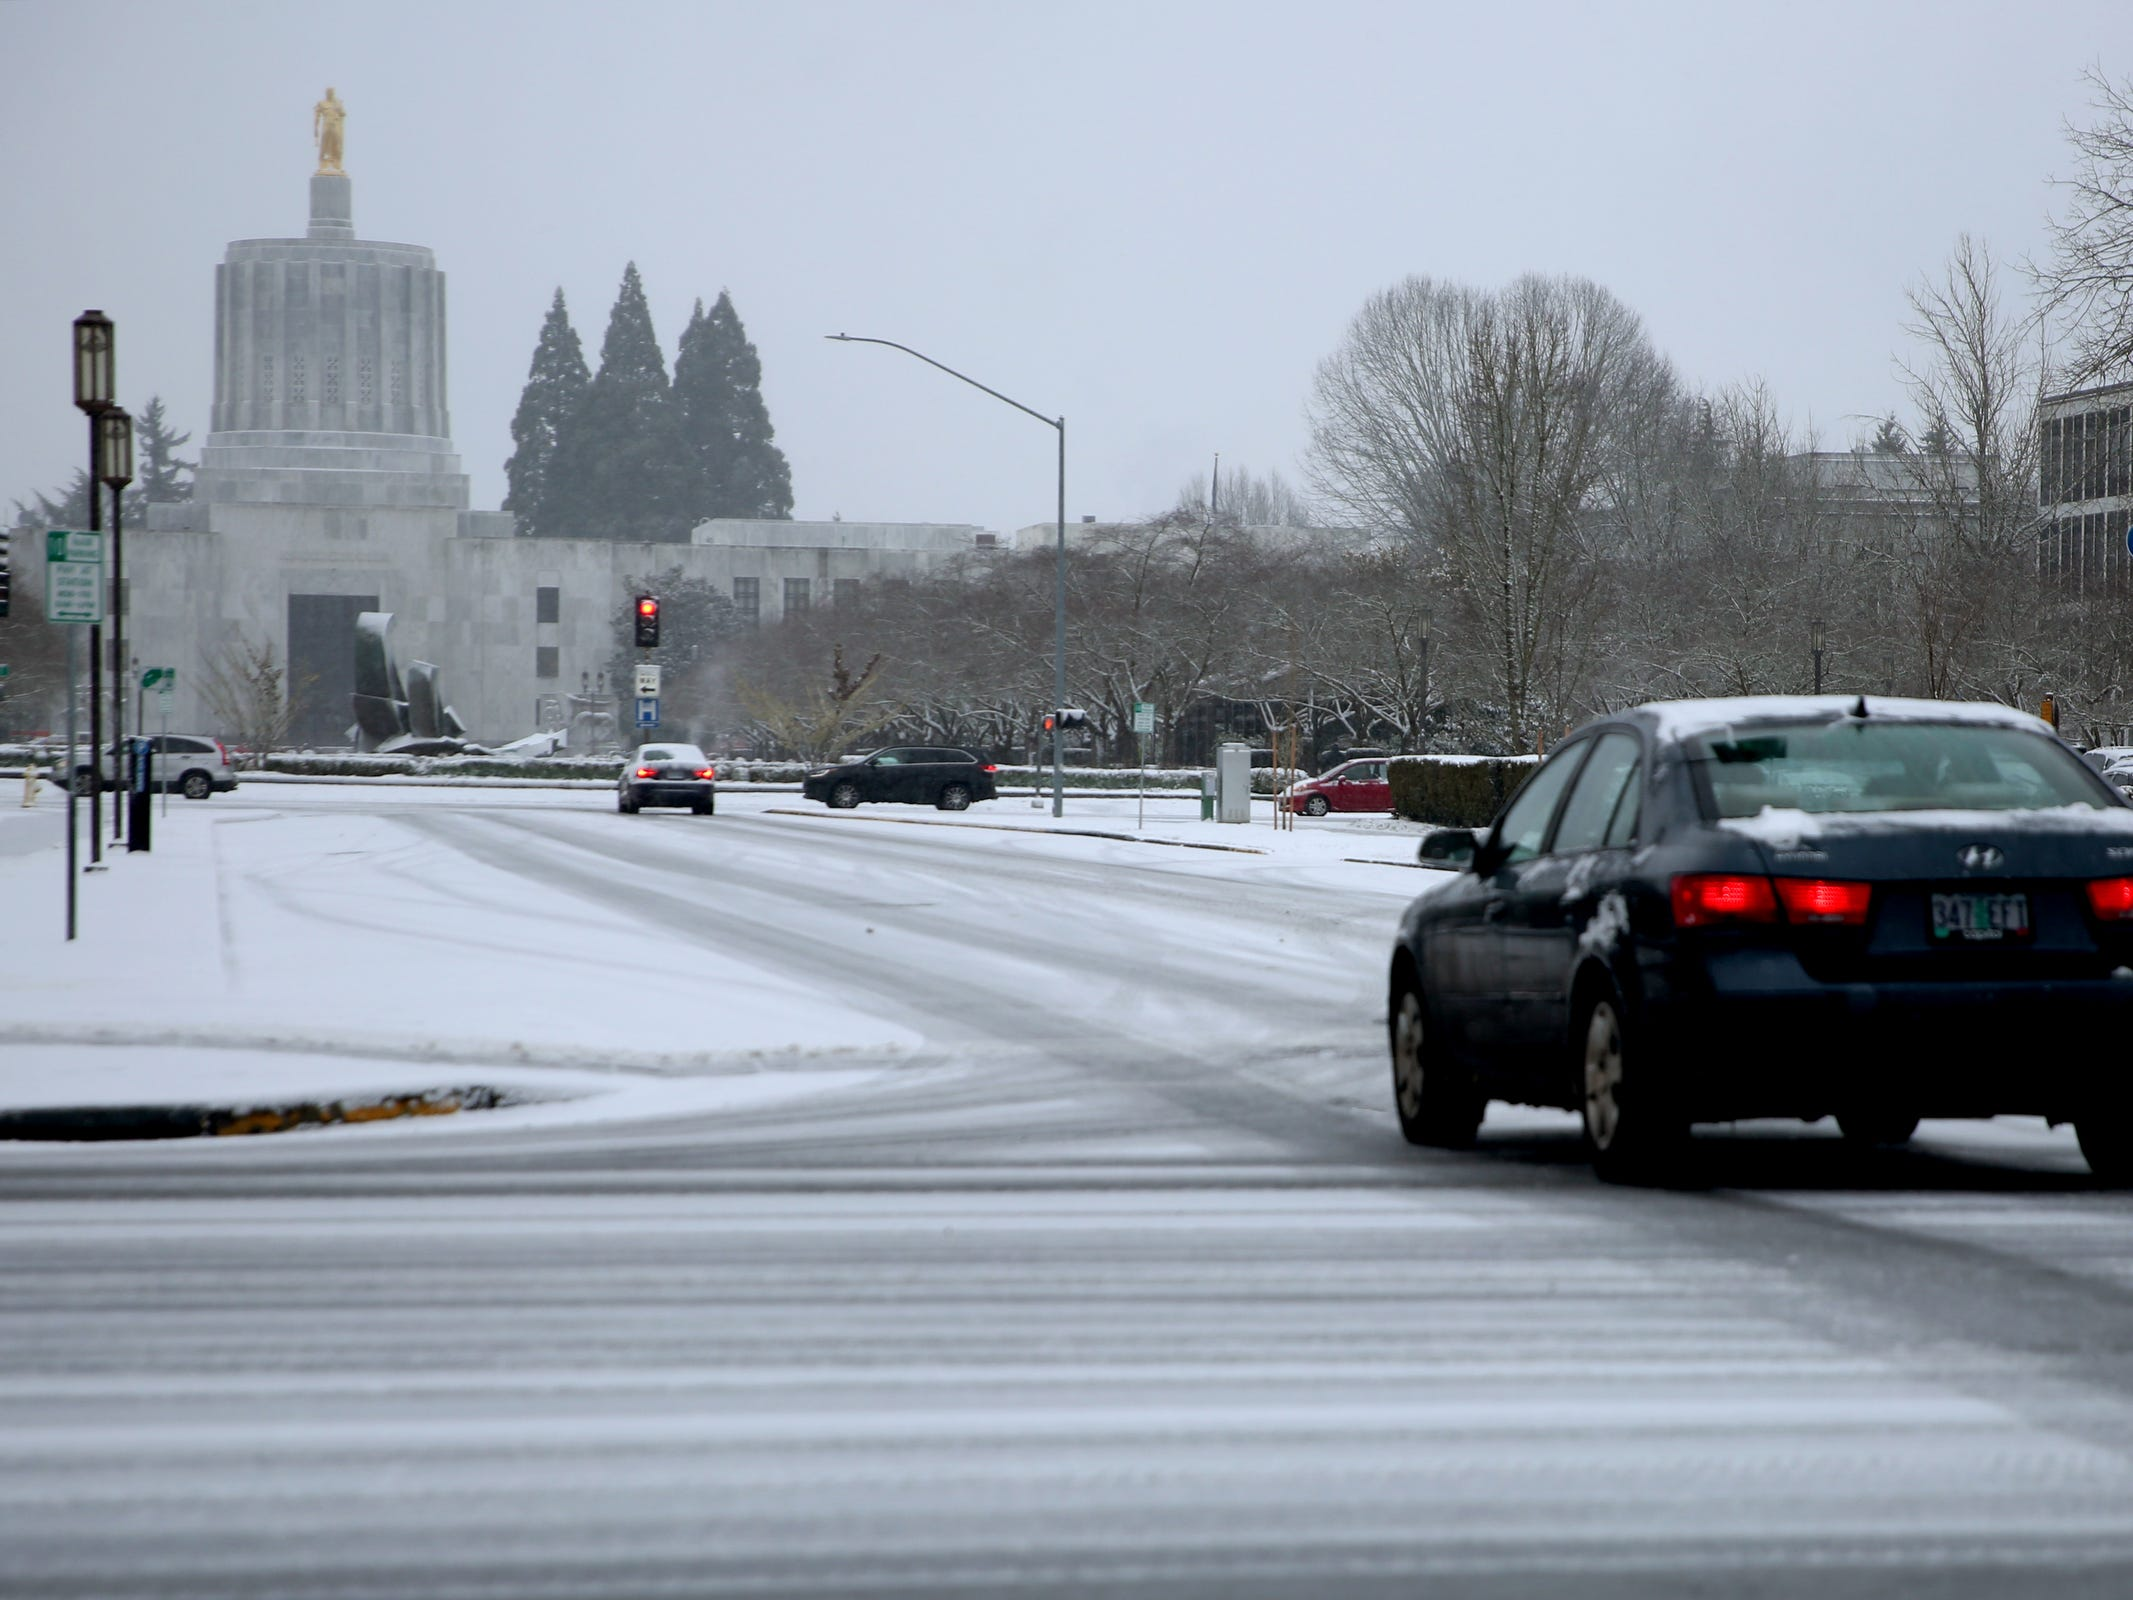 A car drives near the Oregon State Capitol as snow falls in Salem on Wednesday, Feb. 27, 2019.